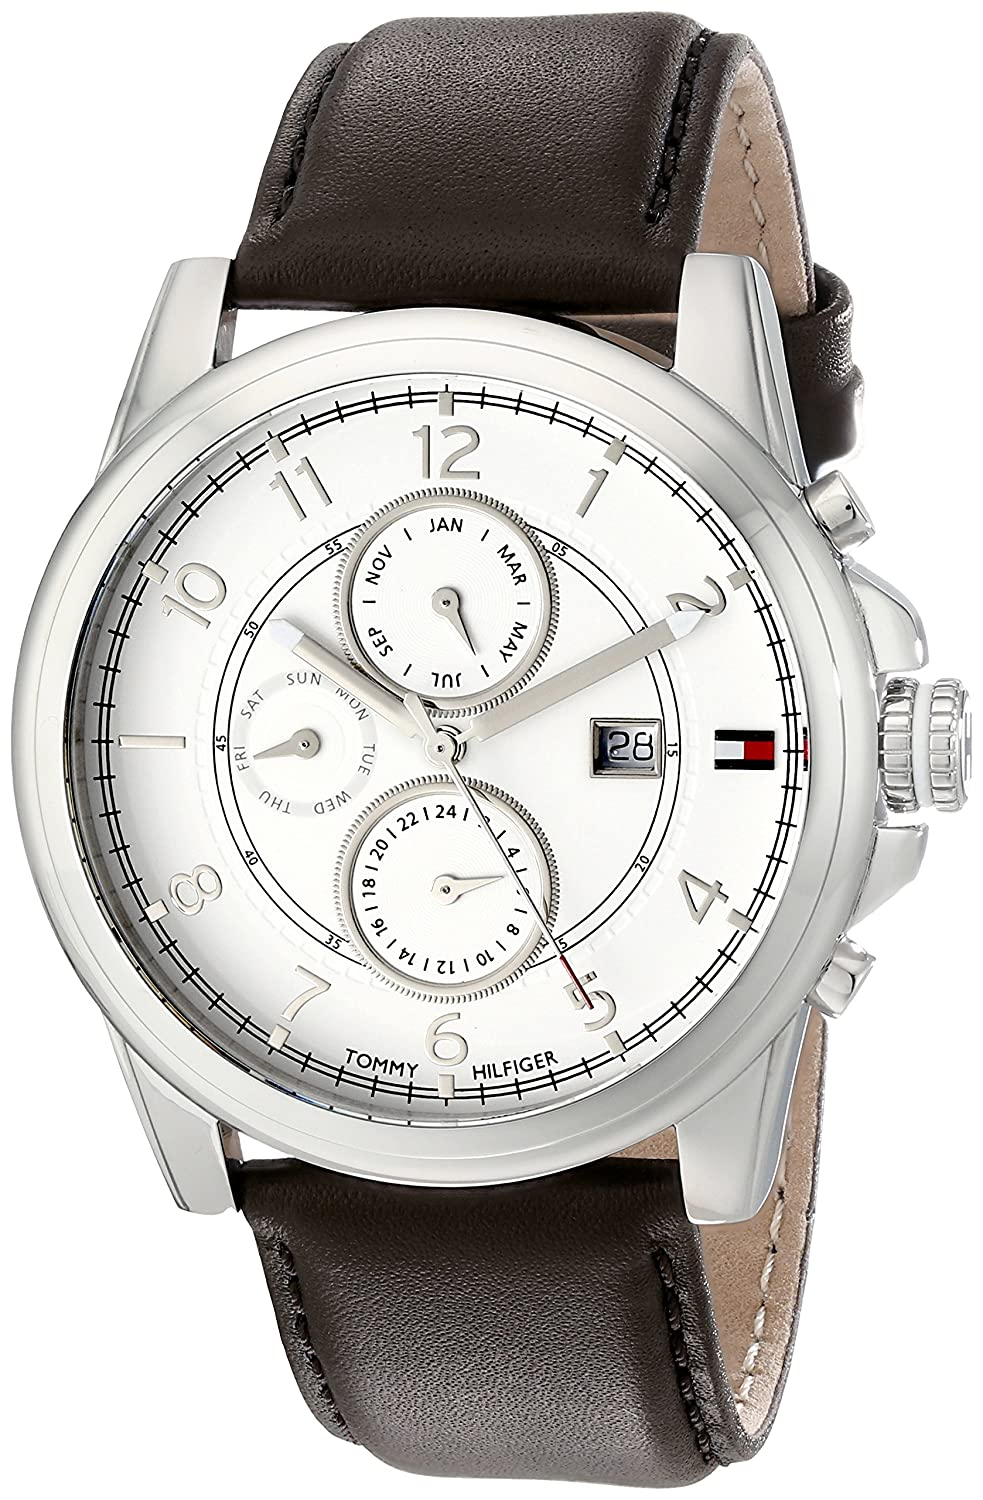 c0def9106 Amazon.com: Tommy Hilfiger Men's 1710294 Stainless Steel Watch with Brown Leather  Band: Tommy Hilfiger: Watches